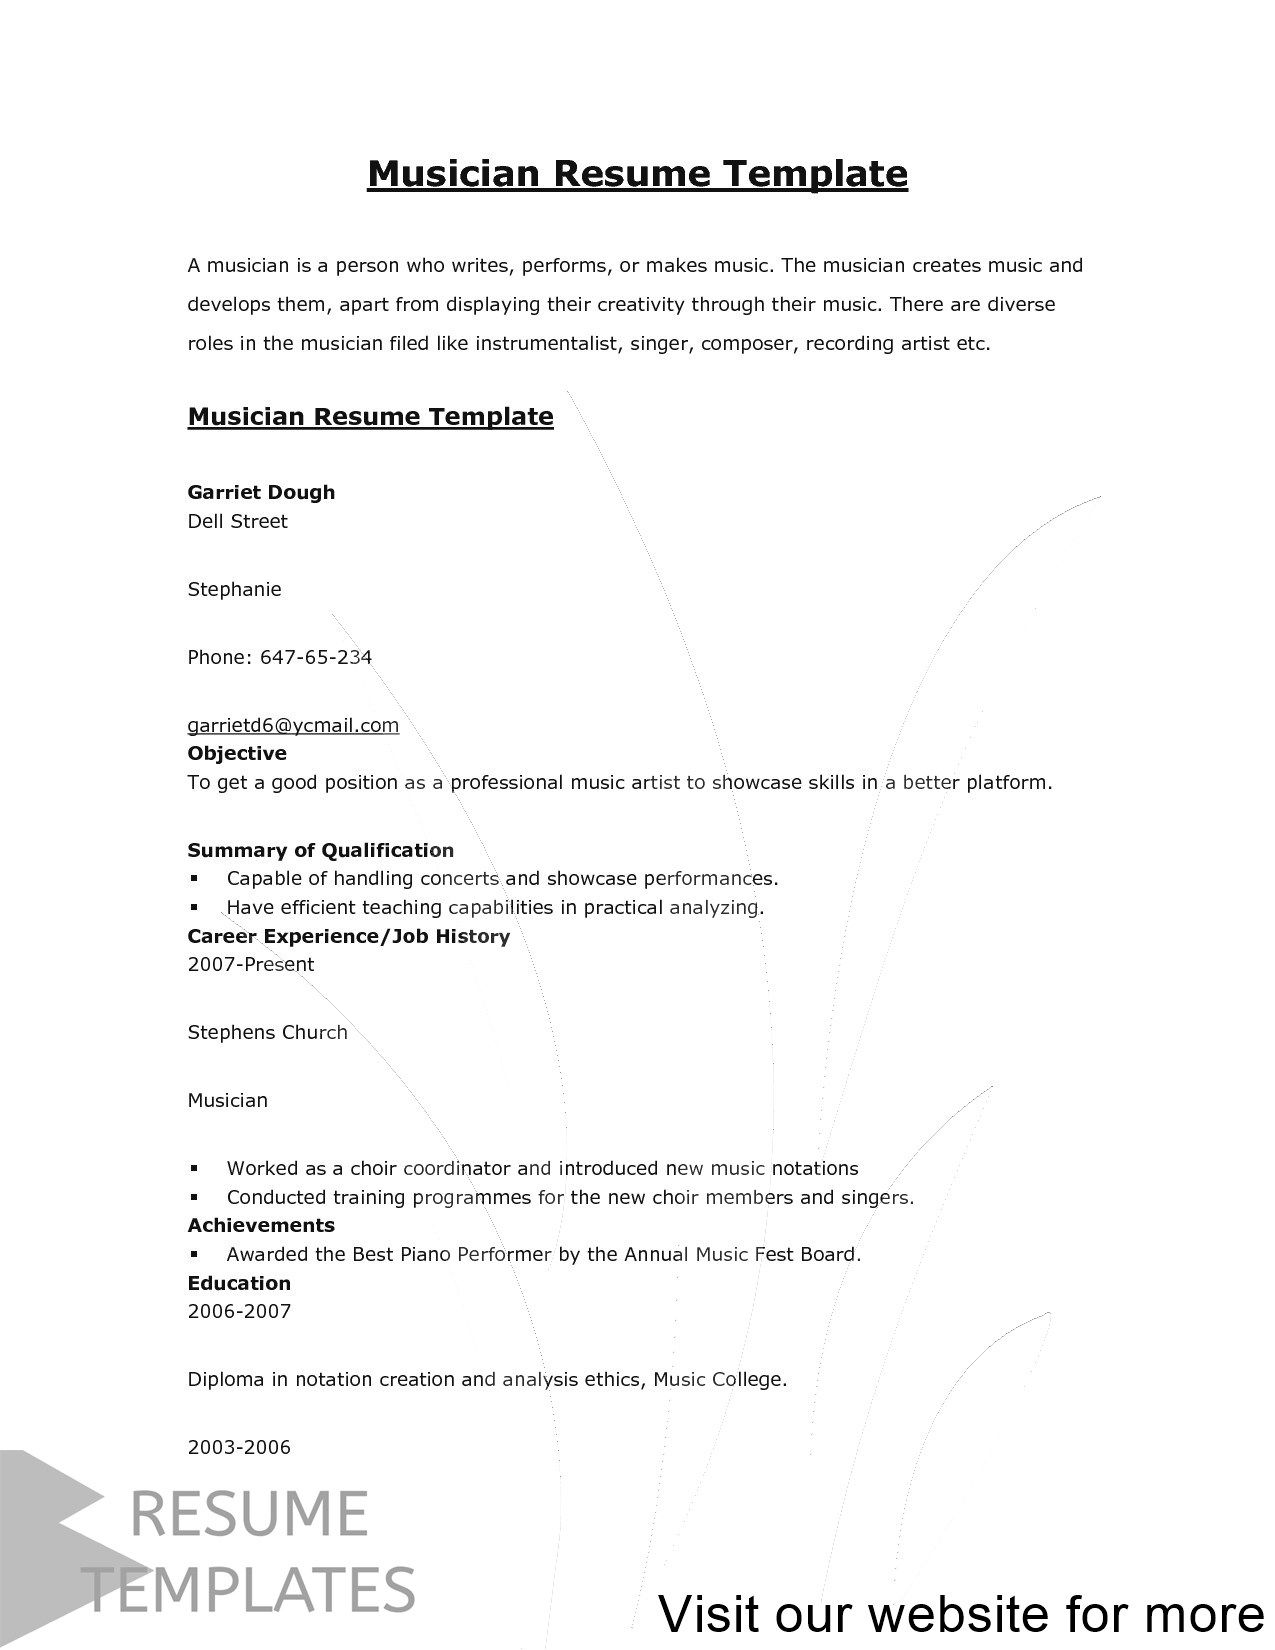 resume template free, resume template professional